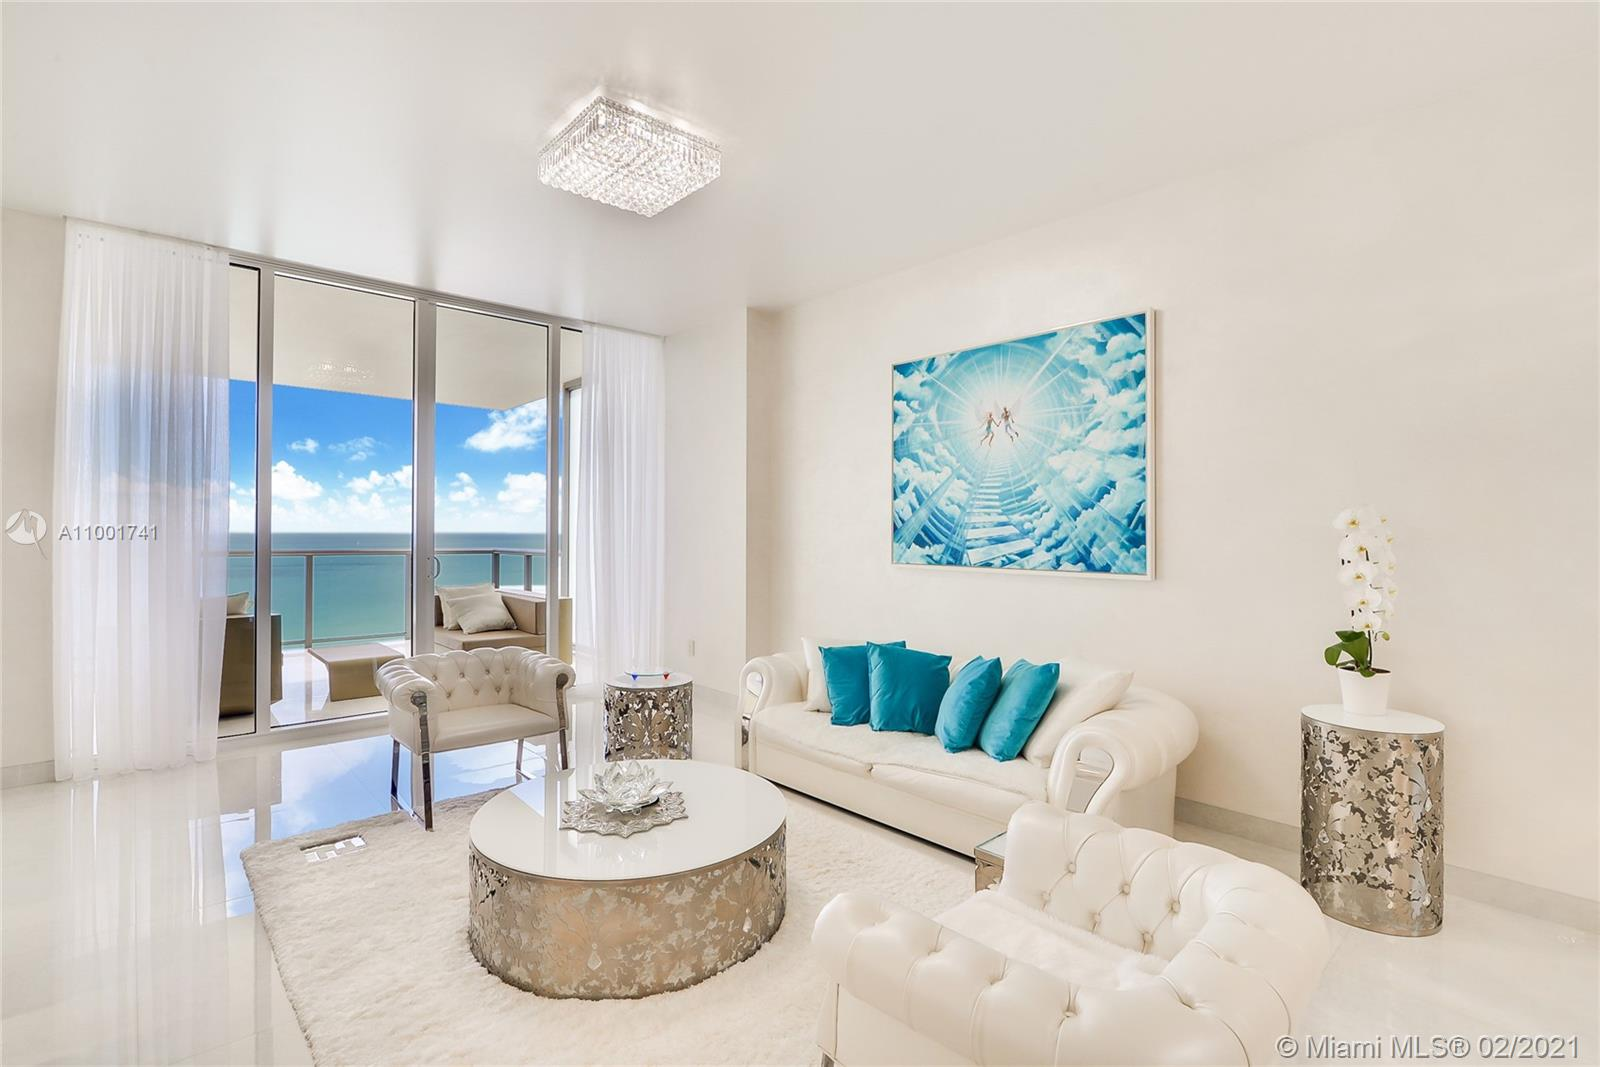 SPECTACULAR LUXURY OCEAN FRONT RESIDENCE/PANORAMIC DIRECT MOST SE OCEAN & Miami Skyline VIEWS /STATE OF THE ART ITALIAN KITCHEN/Brand New BATHROOMS /Private SAUNA Lots of CLOSETS / ITALIAN PORCELAIN THROUGH OUT / FEATURING 3 UNIQUE OVER SIZED PRIVATE TERRACES ! THIS 2 BEDROOMS PLUS A DEN / 2.5 BATHS RESIDENCE IS LOCATED IN THE CENTER TOWER OF THE ST REGIS RESORT BAL HARBOUR / Ultimate luxury 5 Star Resort Amenities. Signature Butler Service, 12 000 Sq. ft. Superb Remede Spa, State of the Art Fitness Center, World Renown Gourmet Dining, World Class Shopping / Nine Acres of Gardens with 600 feet Ocean Frontage, Full Service at the Pool/Beach Area. Enter the world of Privilege and Sophistication that is The St Regis Bay Harbour !!